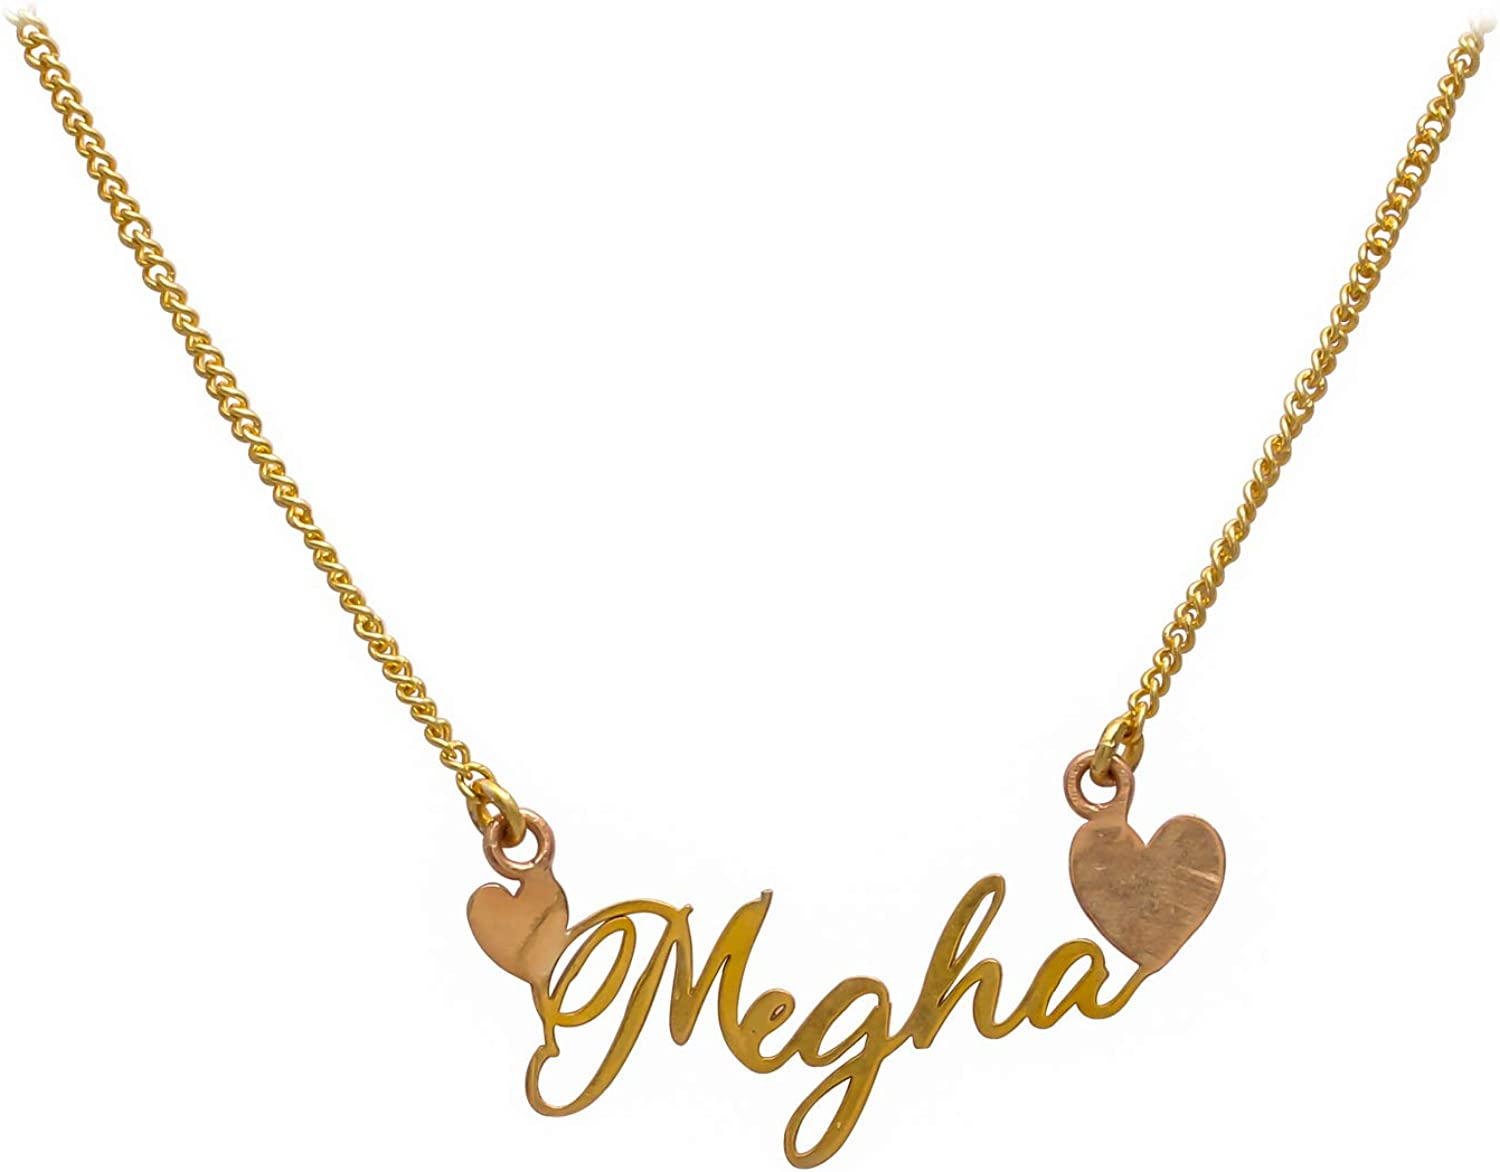 Name Necklace High Quality Polished Available in Gold Plated,Silver Plated,Rose Gold Plated Rhodium Plated At Unbeatable Price Brass Metal Necklace